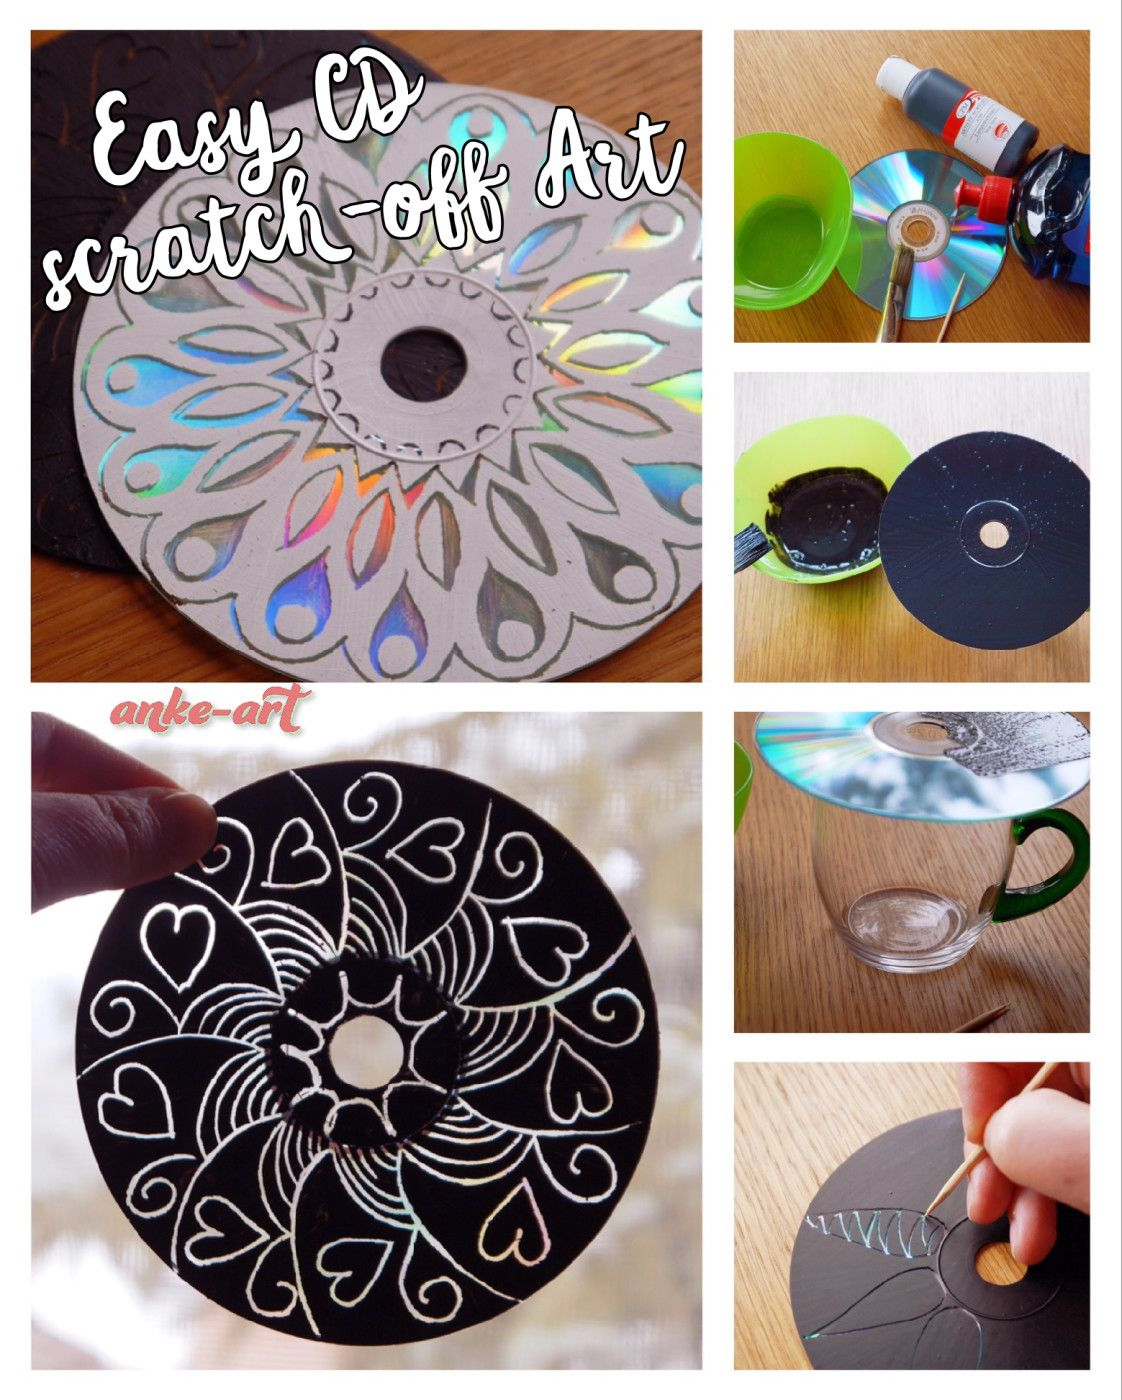 easy cd scratch off art for kids of all ages anke art art and